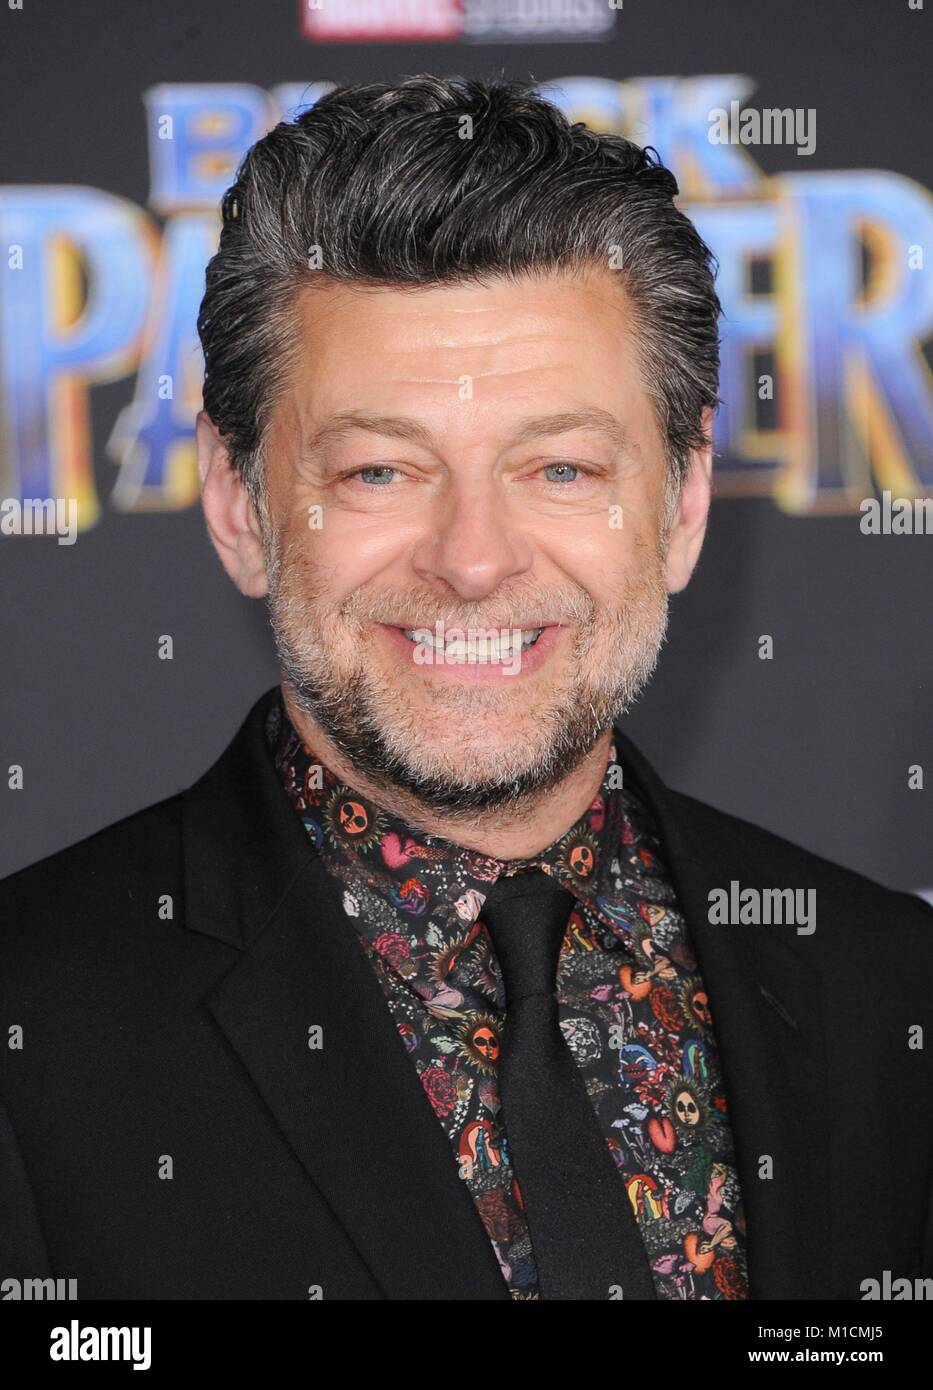 Los Angeles, CA, USA. 29th Jan, 2018. Andy Serkis at arrivals for Marvel Studios BLACK PANTHER Premiere, The Dolby - Stock Image